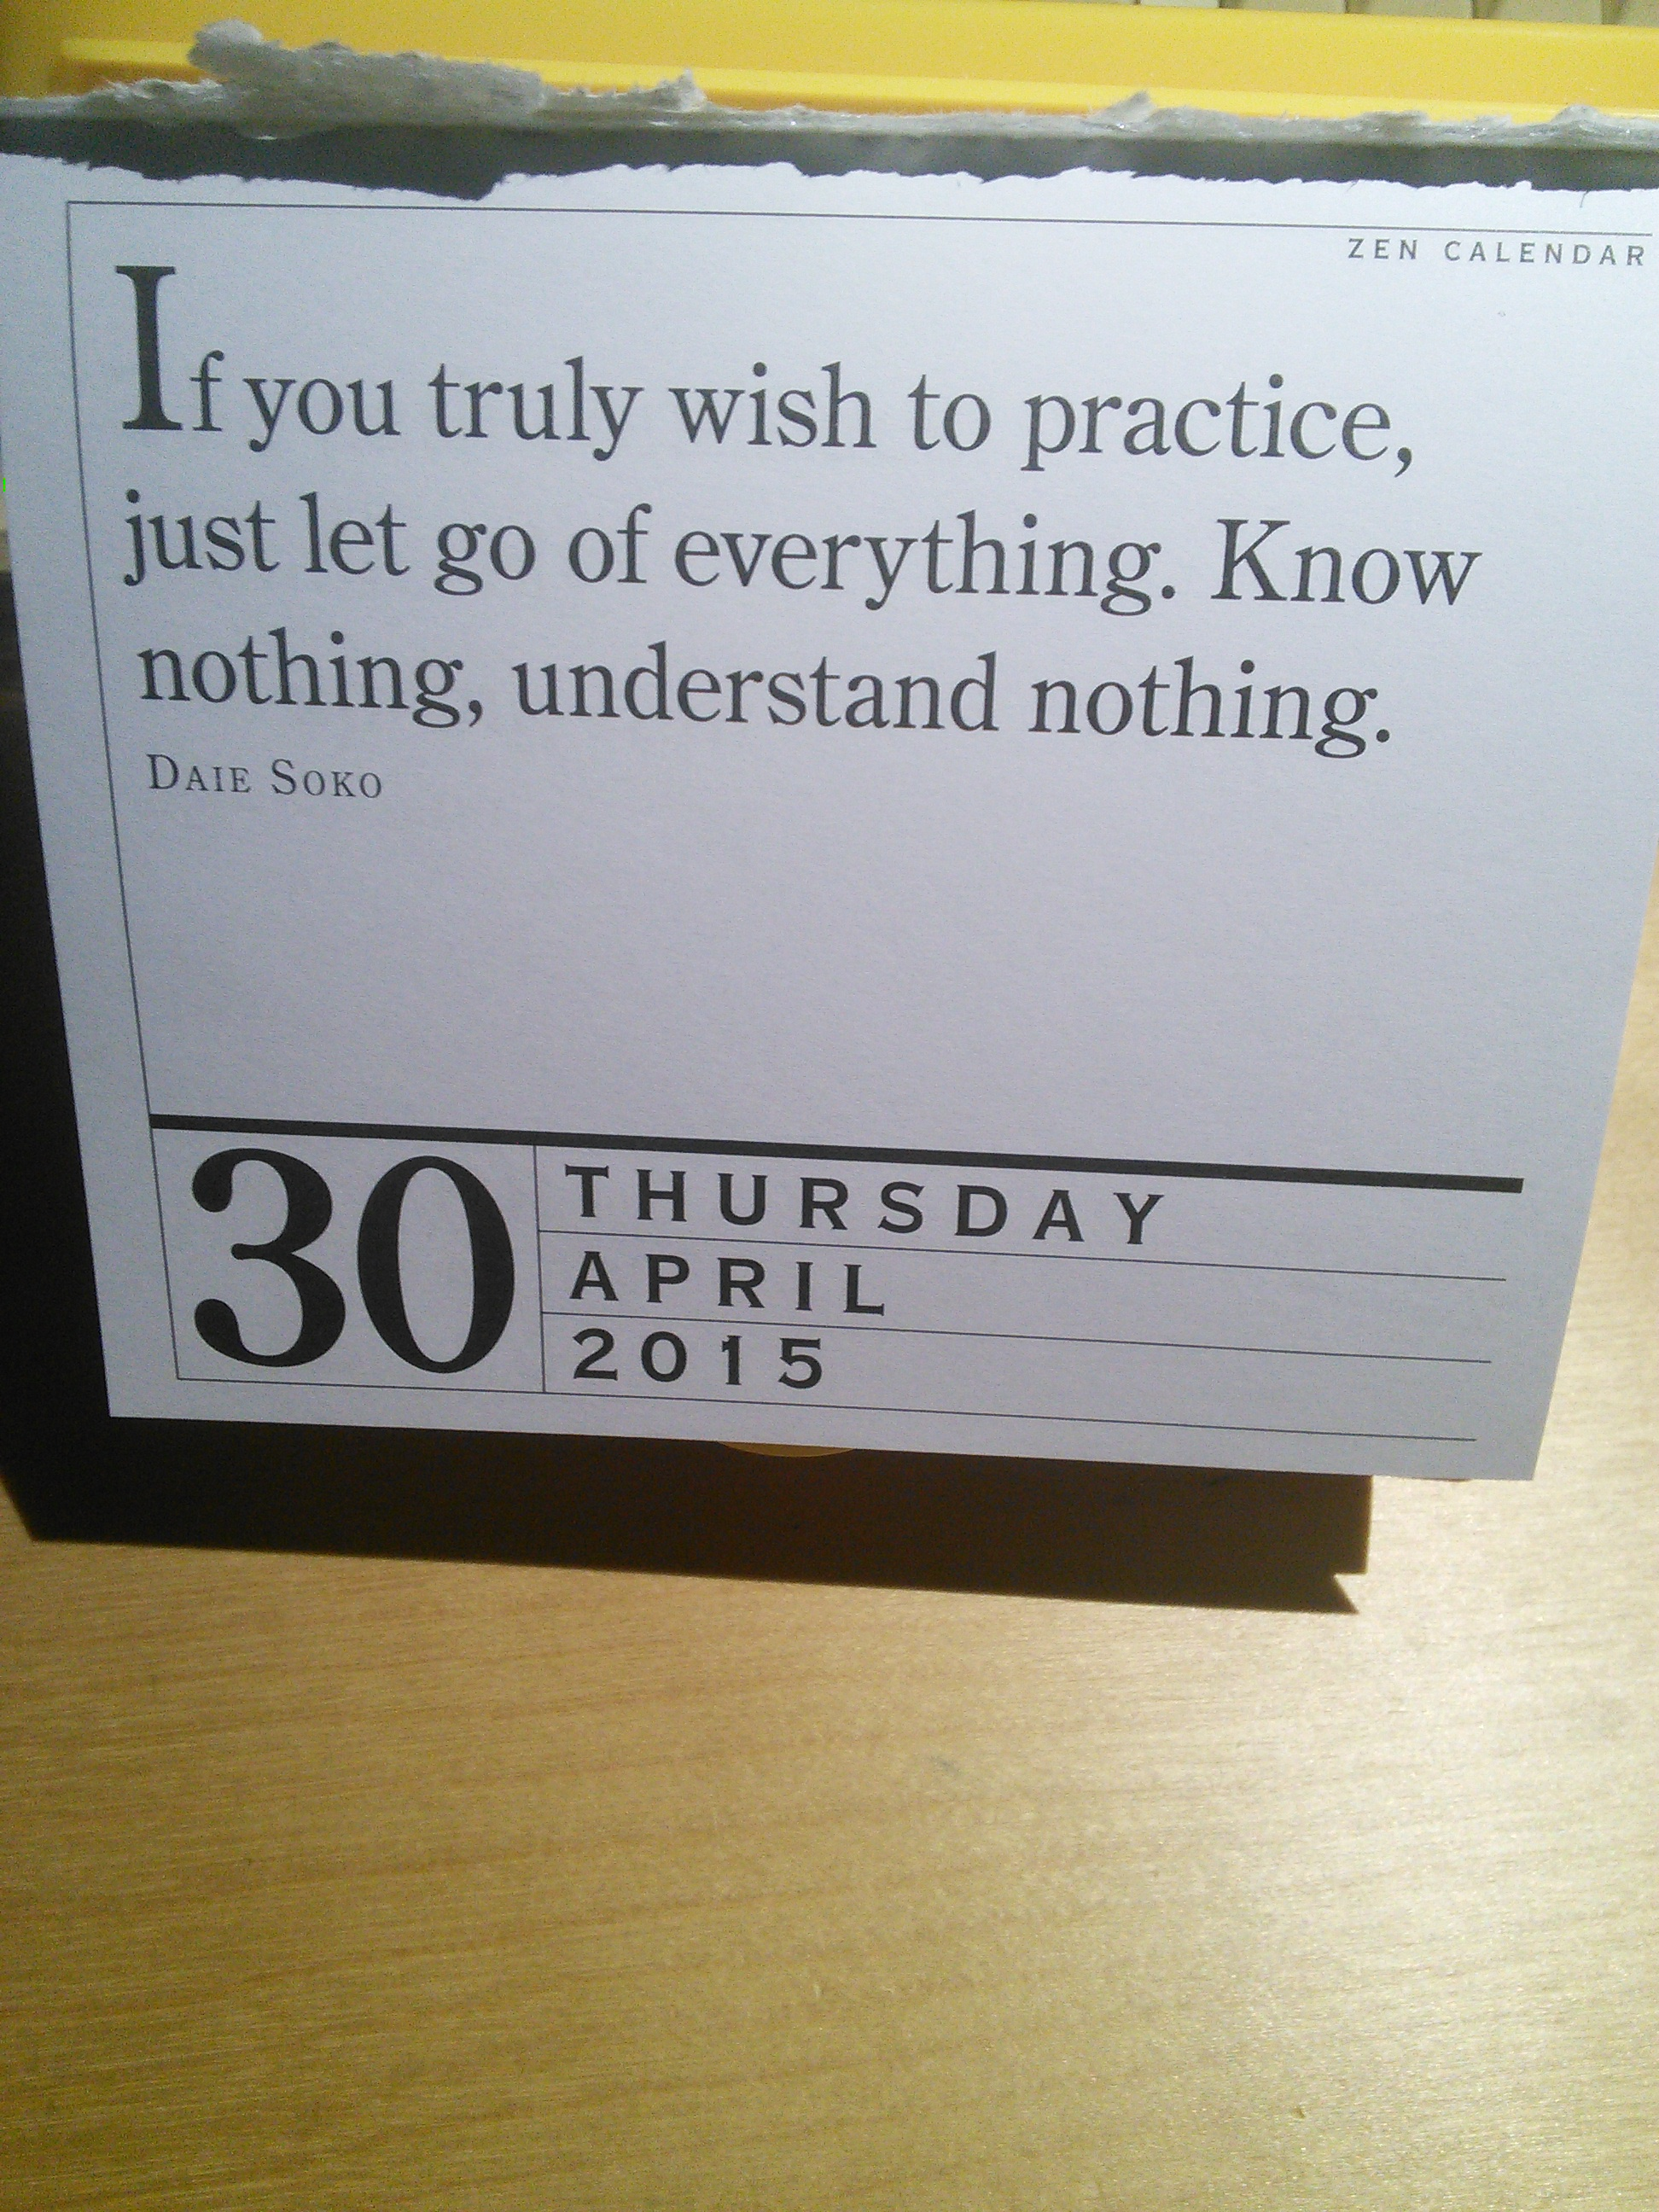 "image: ""If you truly wish to practice, just let go of everything. Know nothing, understand nothing."" Daie Soko, from the Zen Calendar entry for Thursday, April 30, 2015"